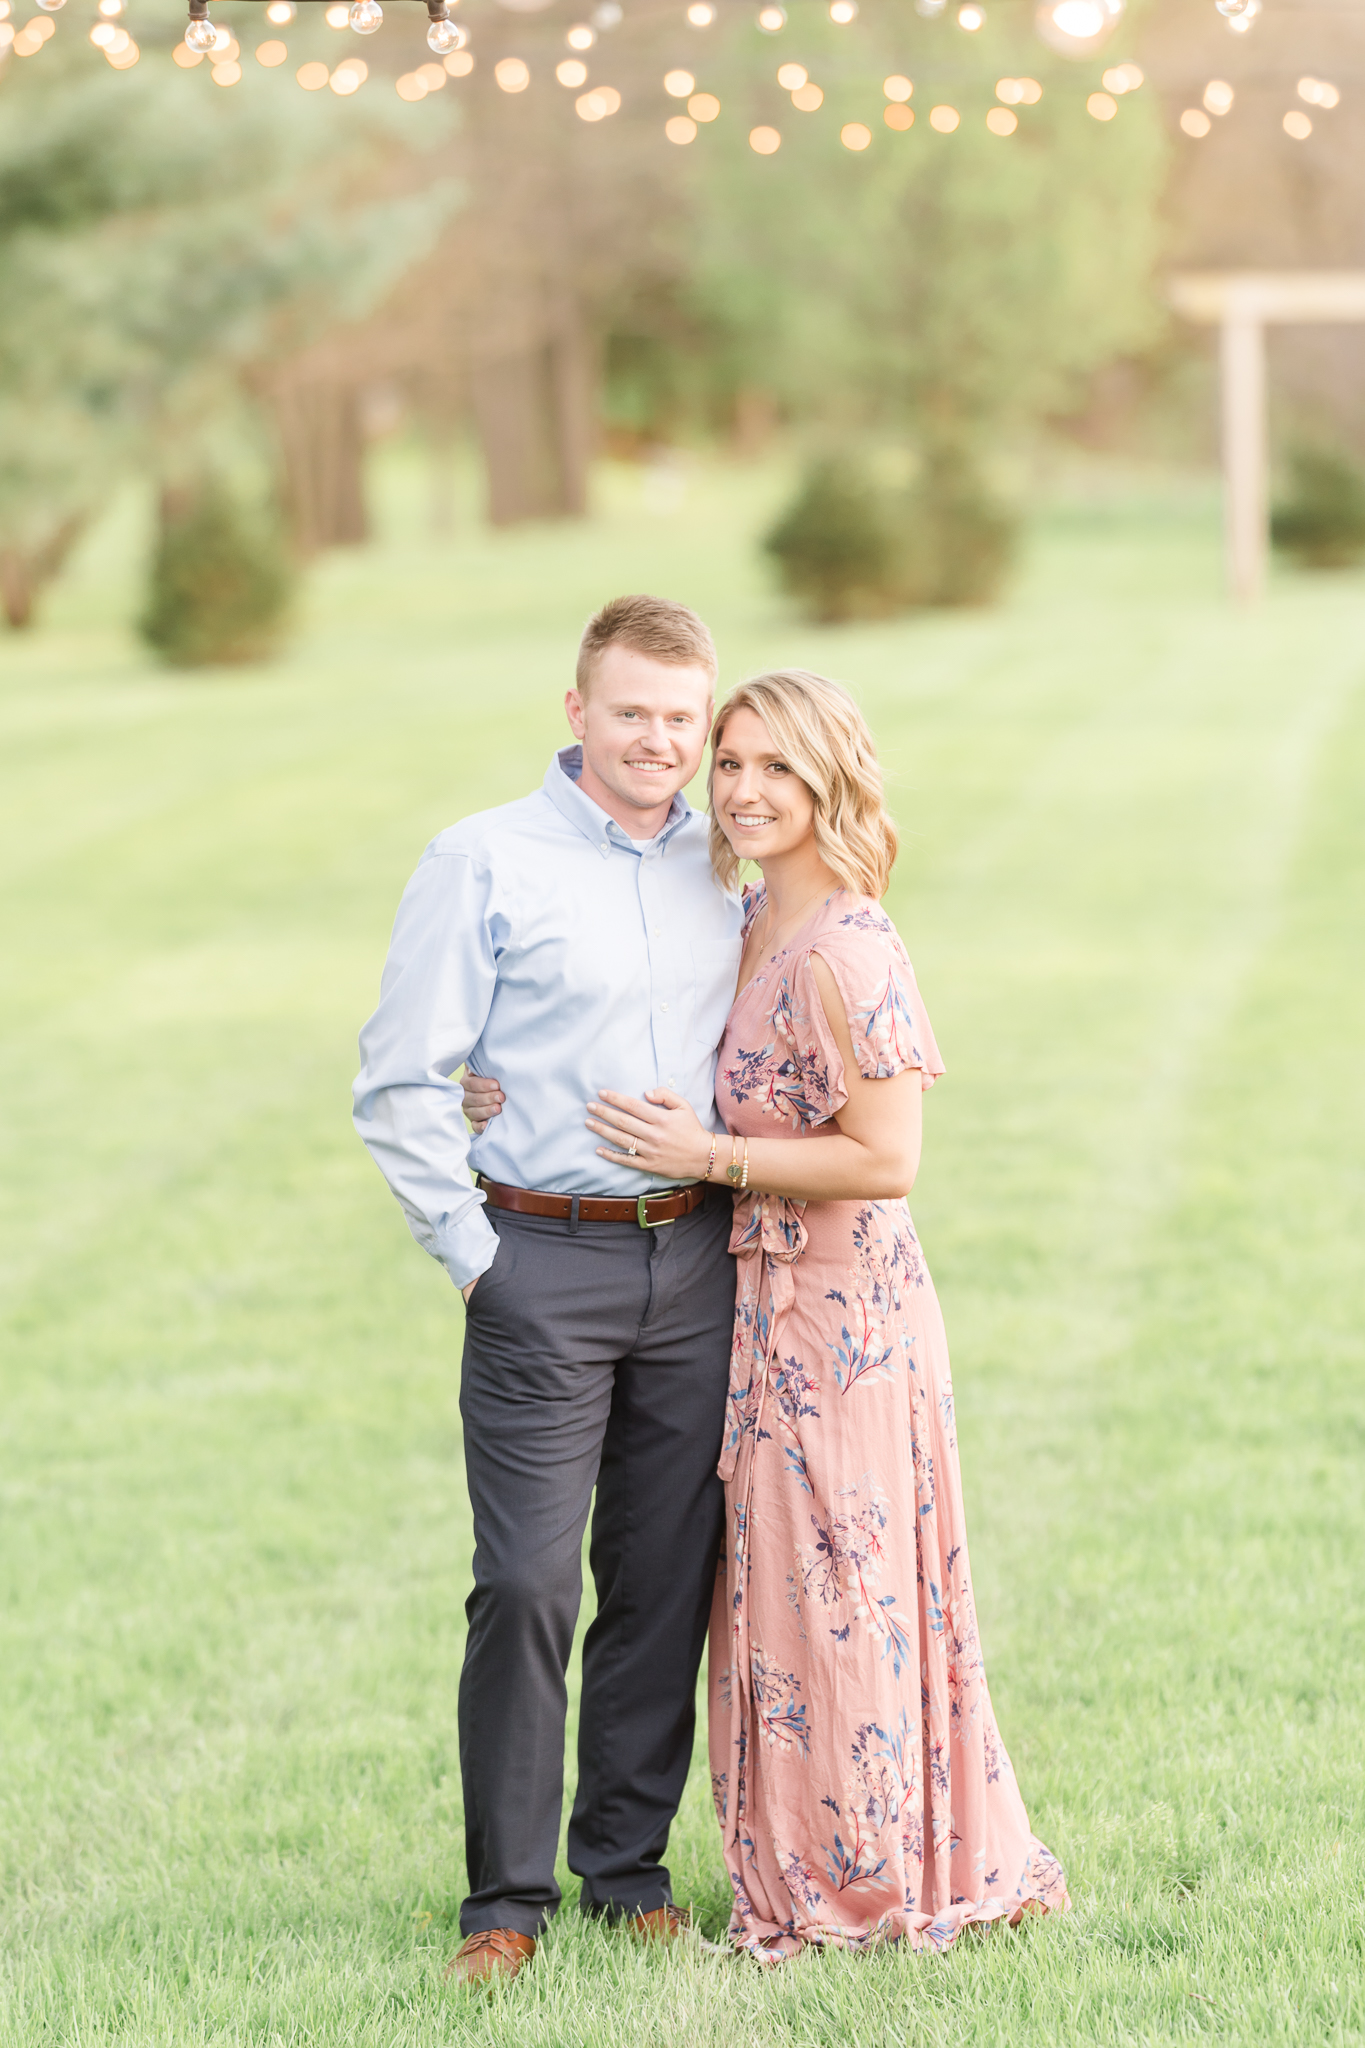 Richie Woods Nature Preserve and Mustard Seed Gardens Engagement Session Wedding Photos-32.jpg